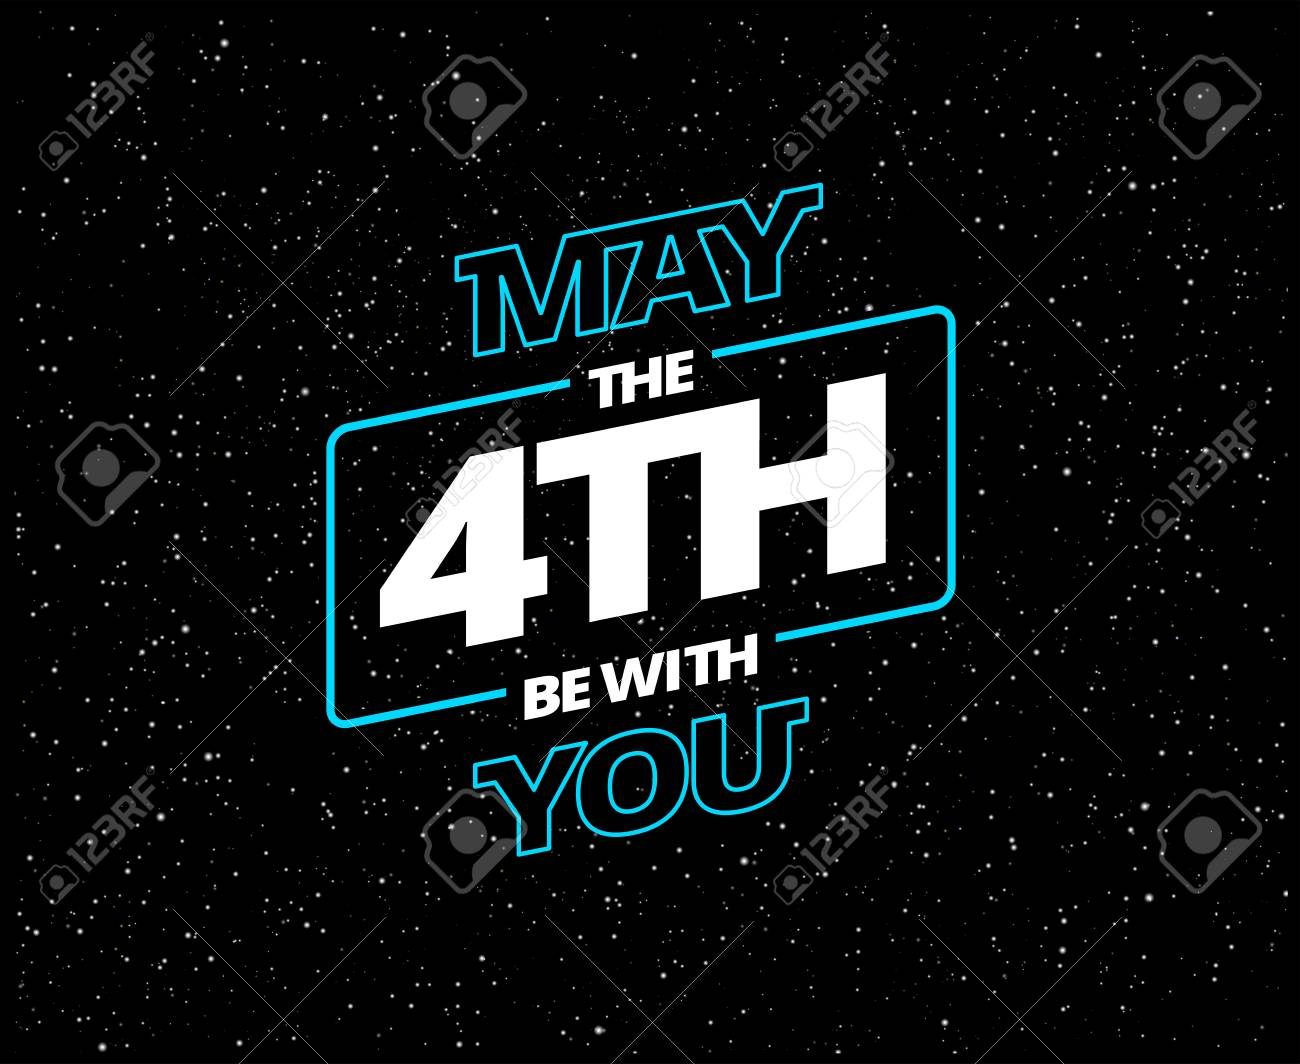 May the 4th be with you - holiday greeting card - vector blue and white letters in black starry night sky - 101984829